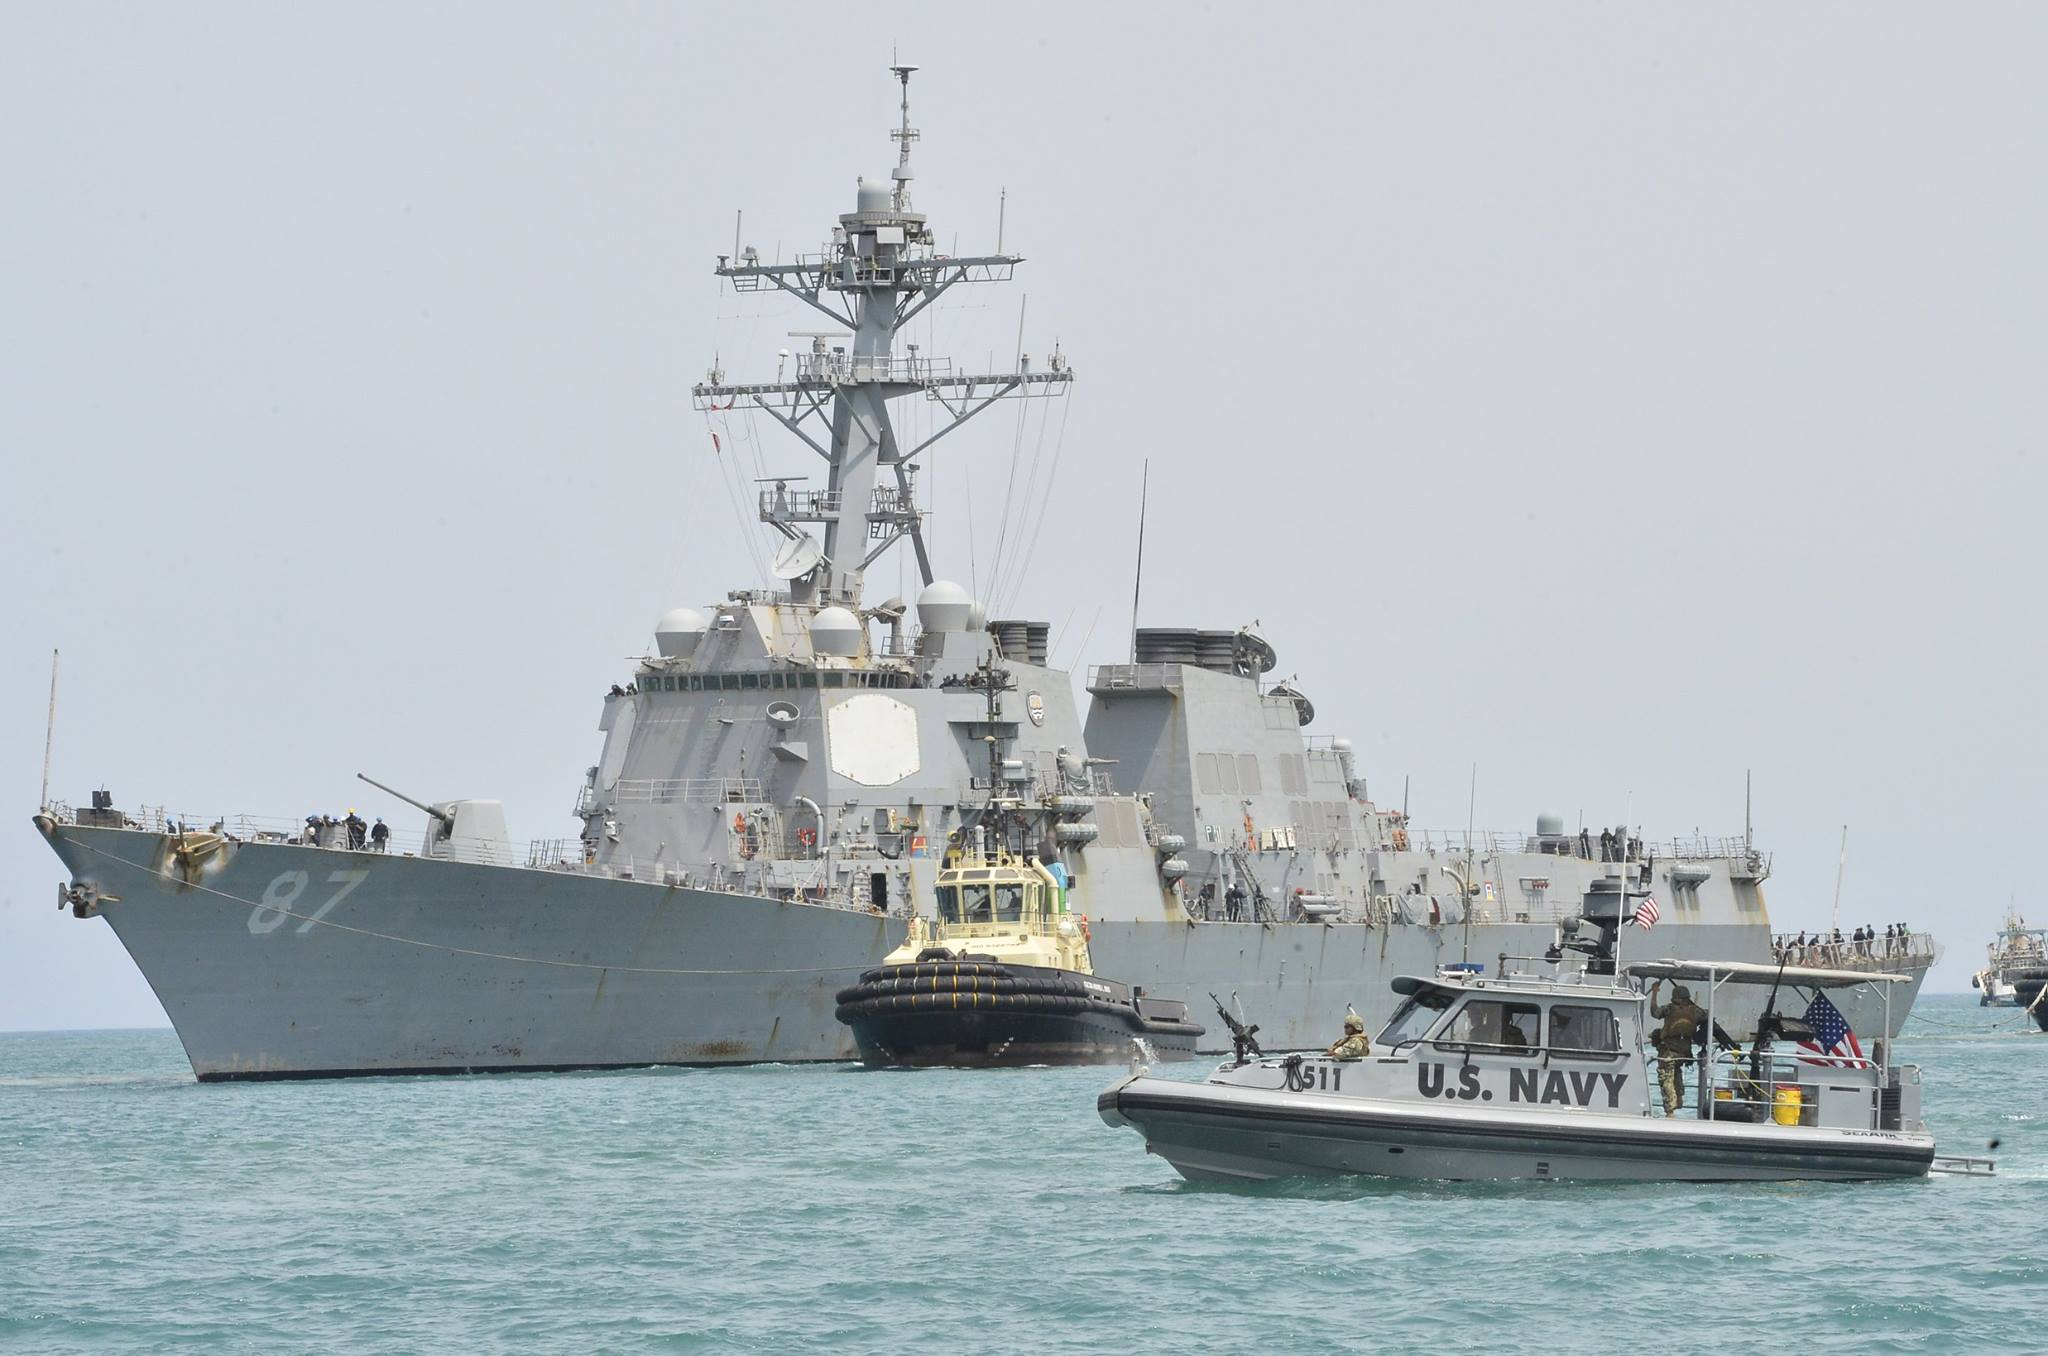 USS Mason (DDG-87) pulls into the Port of Djibouti escorted by Coastal Riverine Squadron 8 Sea Ark patrol boats on July 23, 2016. US Navy Photo